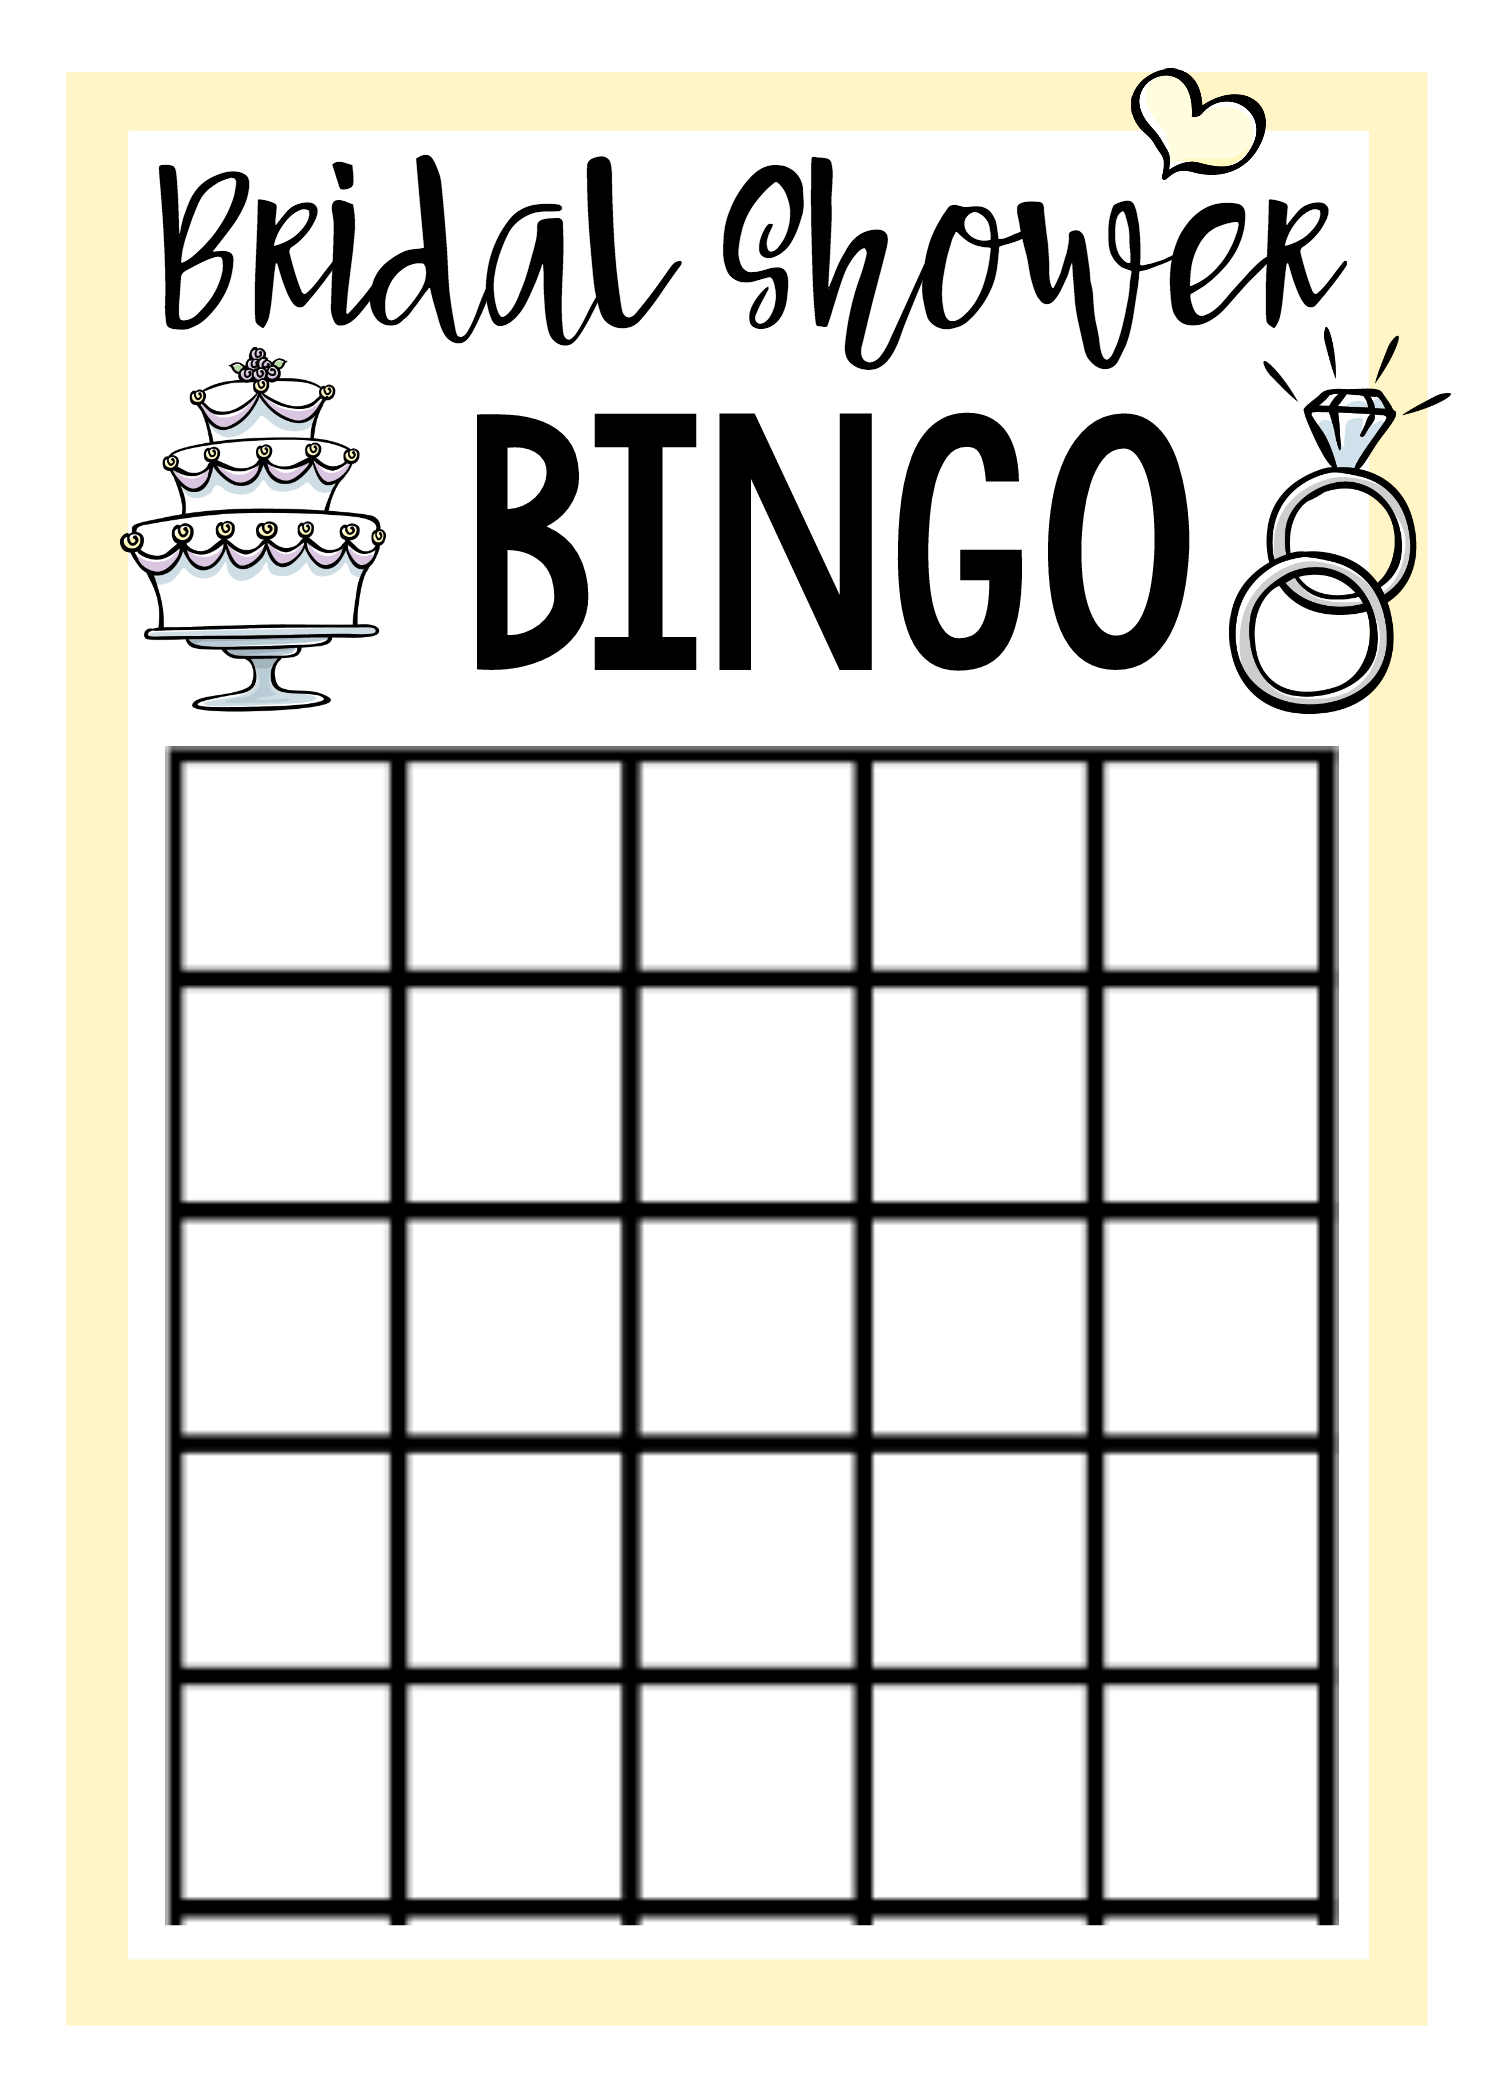 photograph relating to Free Printable Bridal Shower Games identify Totally free Printable Bridal Shower Game titles Exciting-Squared